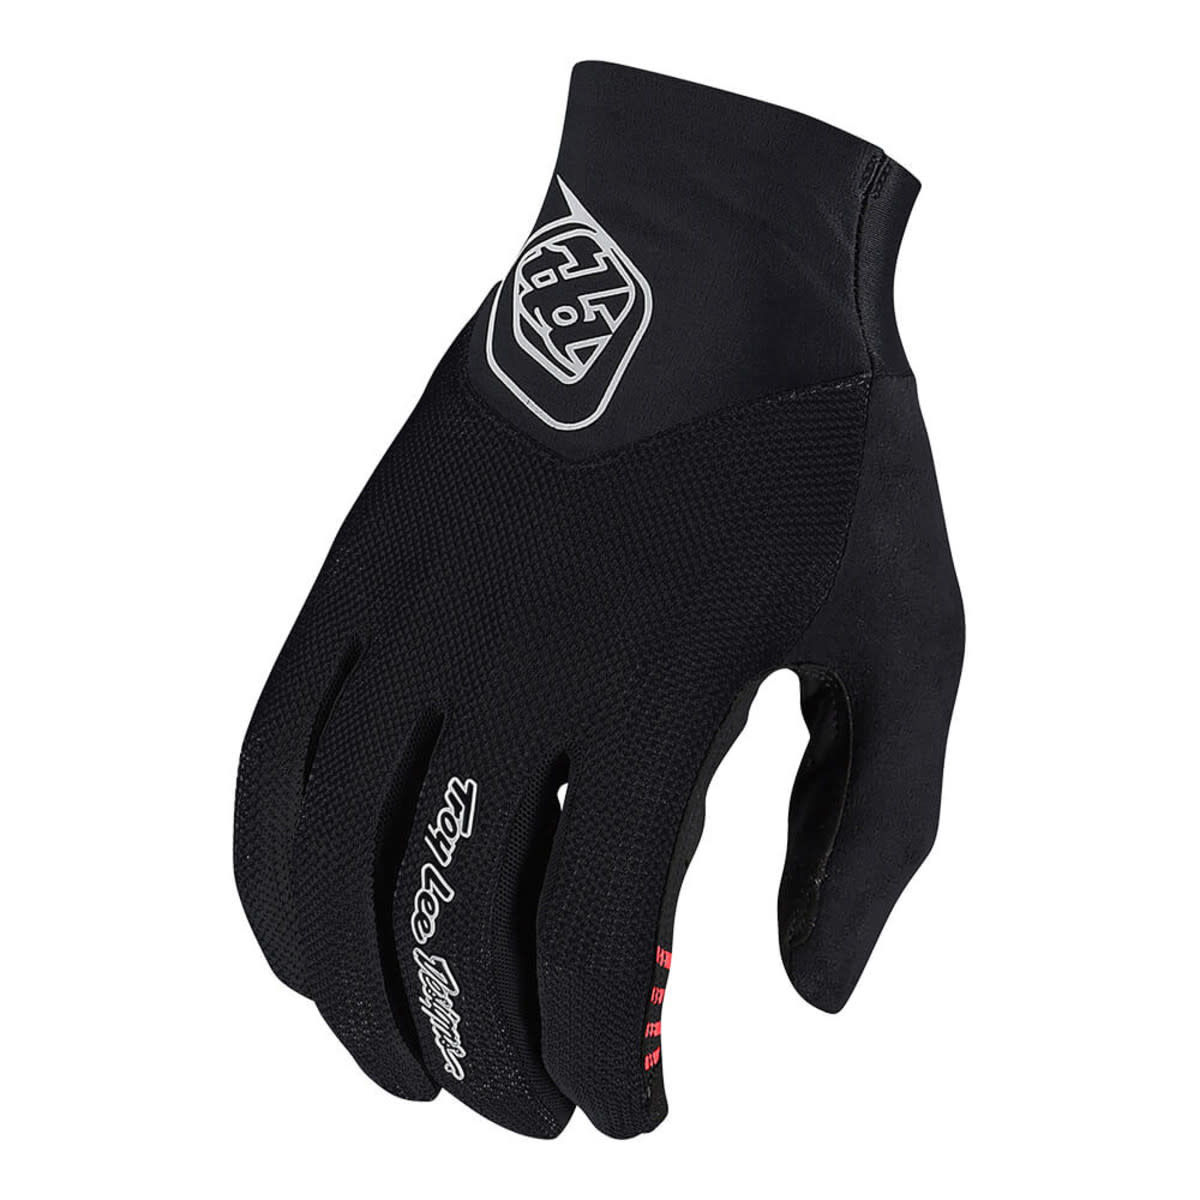 TROY LEE DESIGNS 2019 TLD GLOVES WOMENS ACE 2.0